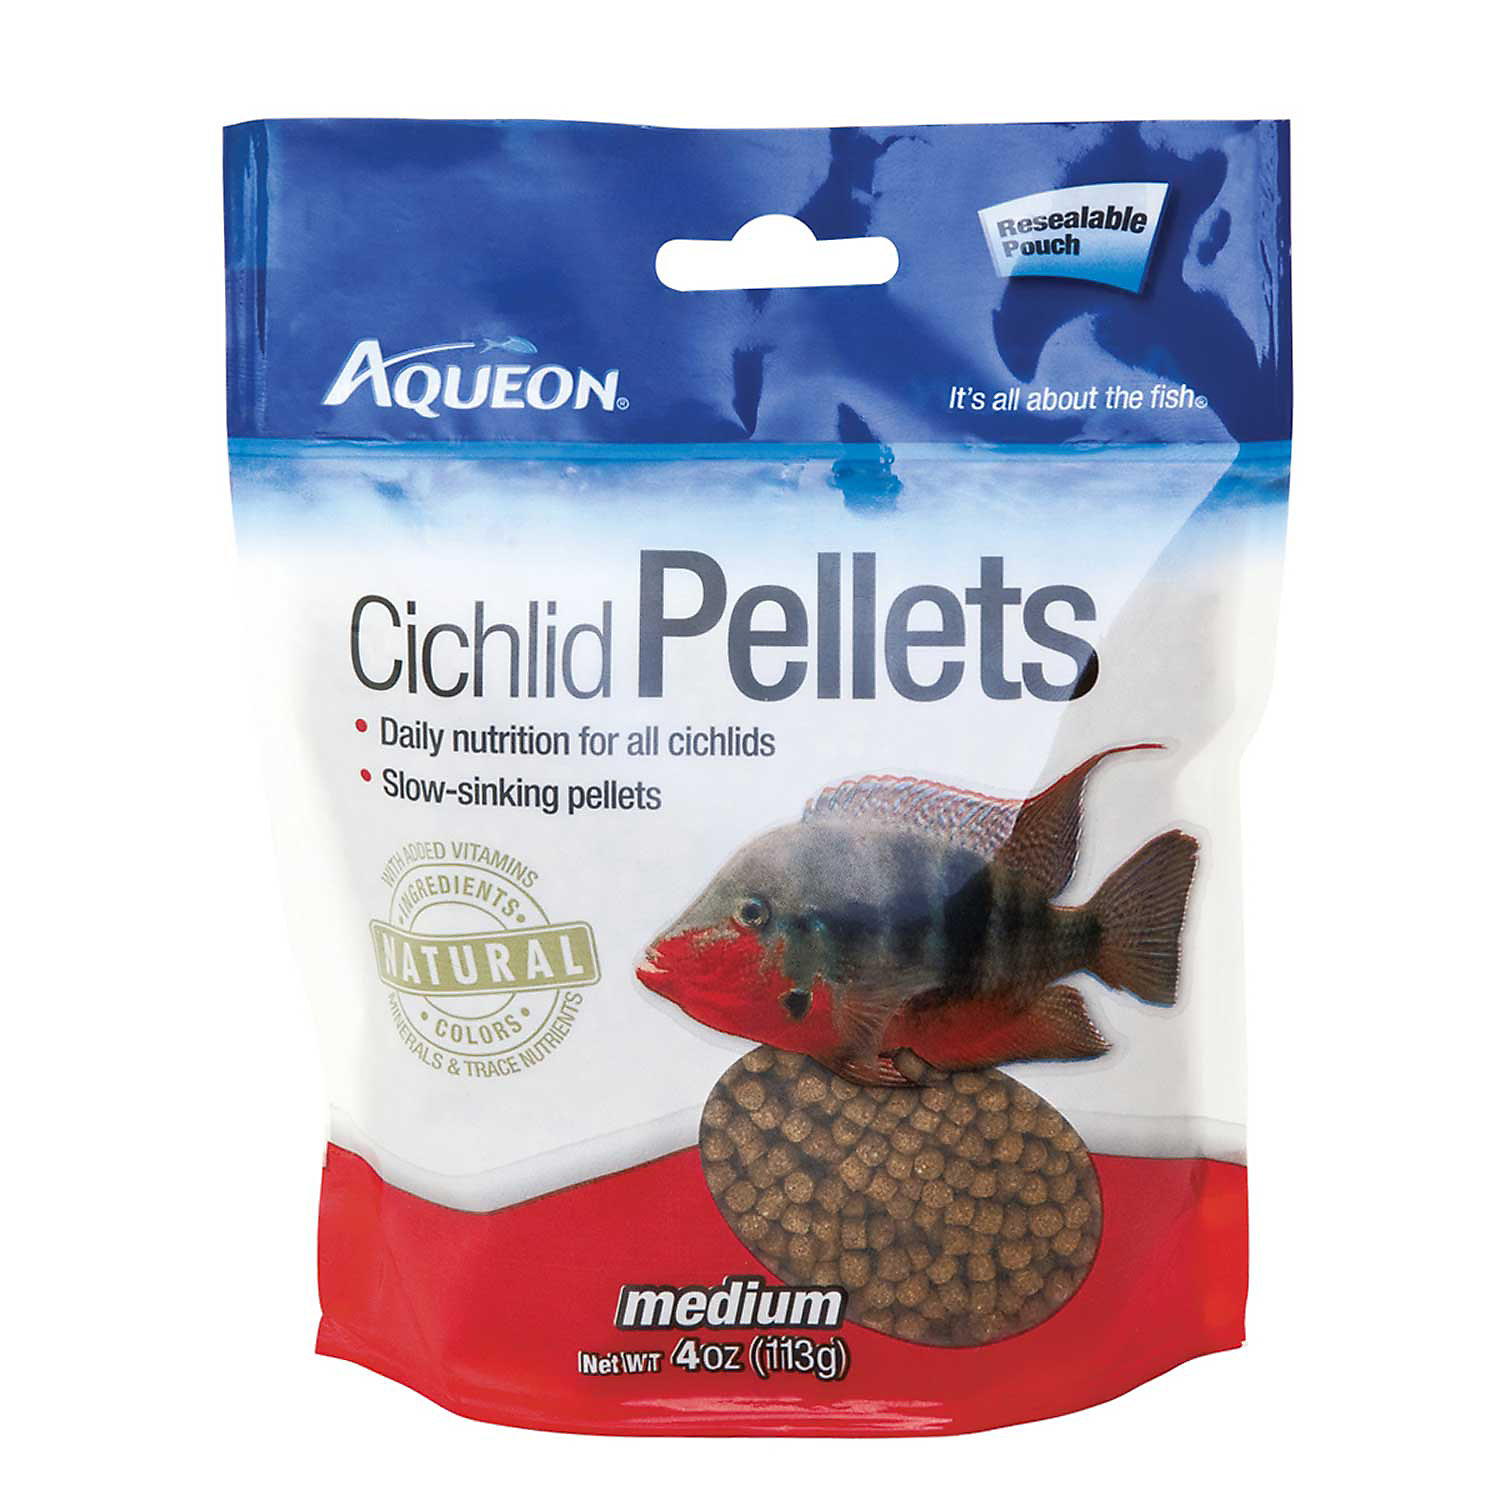 Aqueon Medium Pellet Cichlid Food 4 Oz.